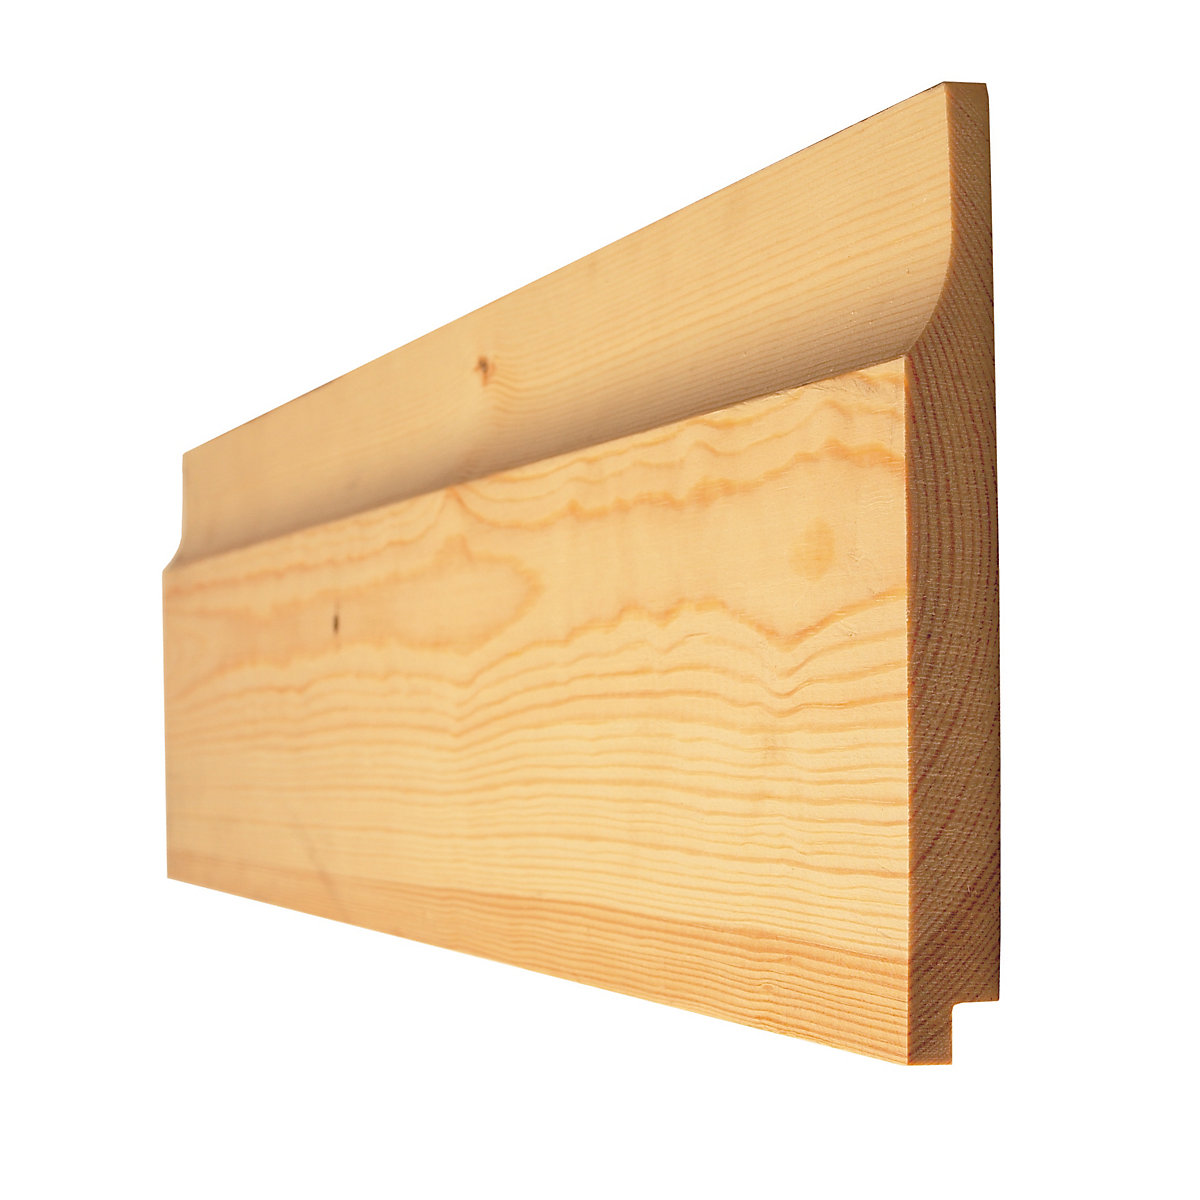 Timber Cladding | External Shiplap, Tongue & Groove Cladding